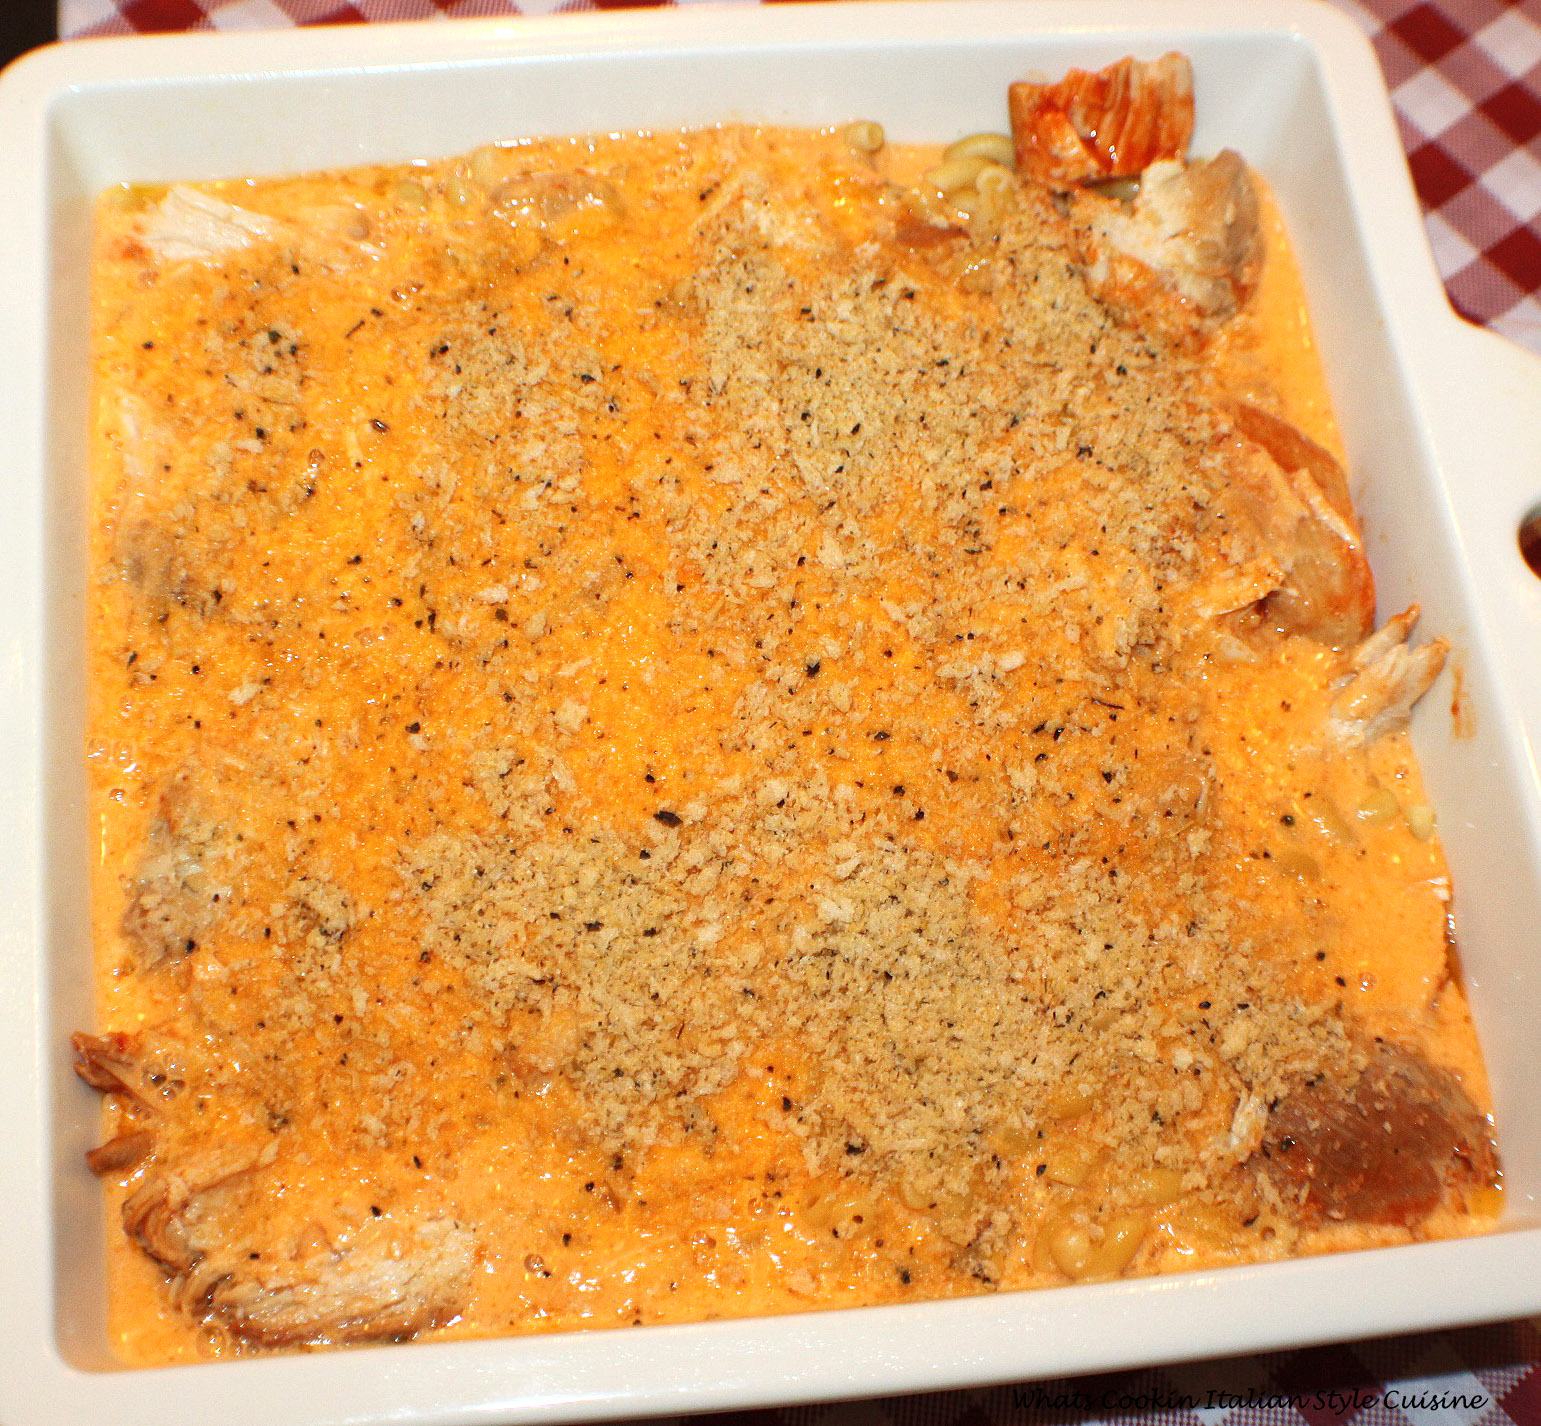 buffalo chicken wing flavor in this casserole with boneless chicken, hot sauce, macaroni and cheese all in one casserole dish